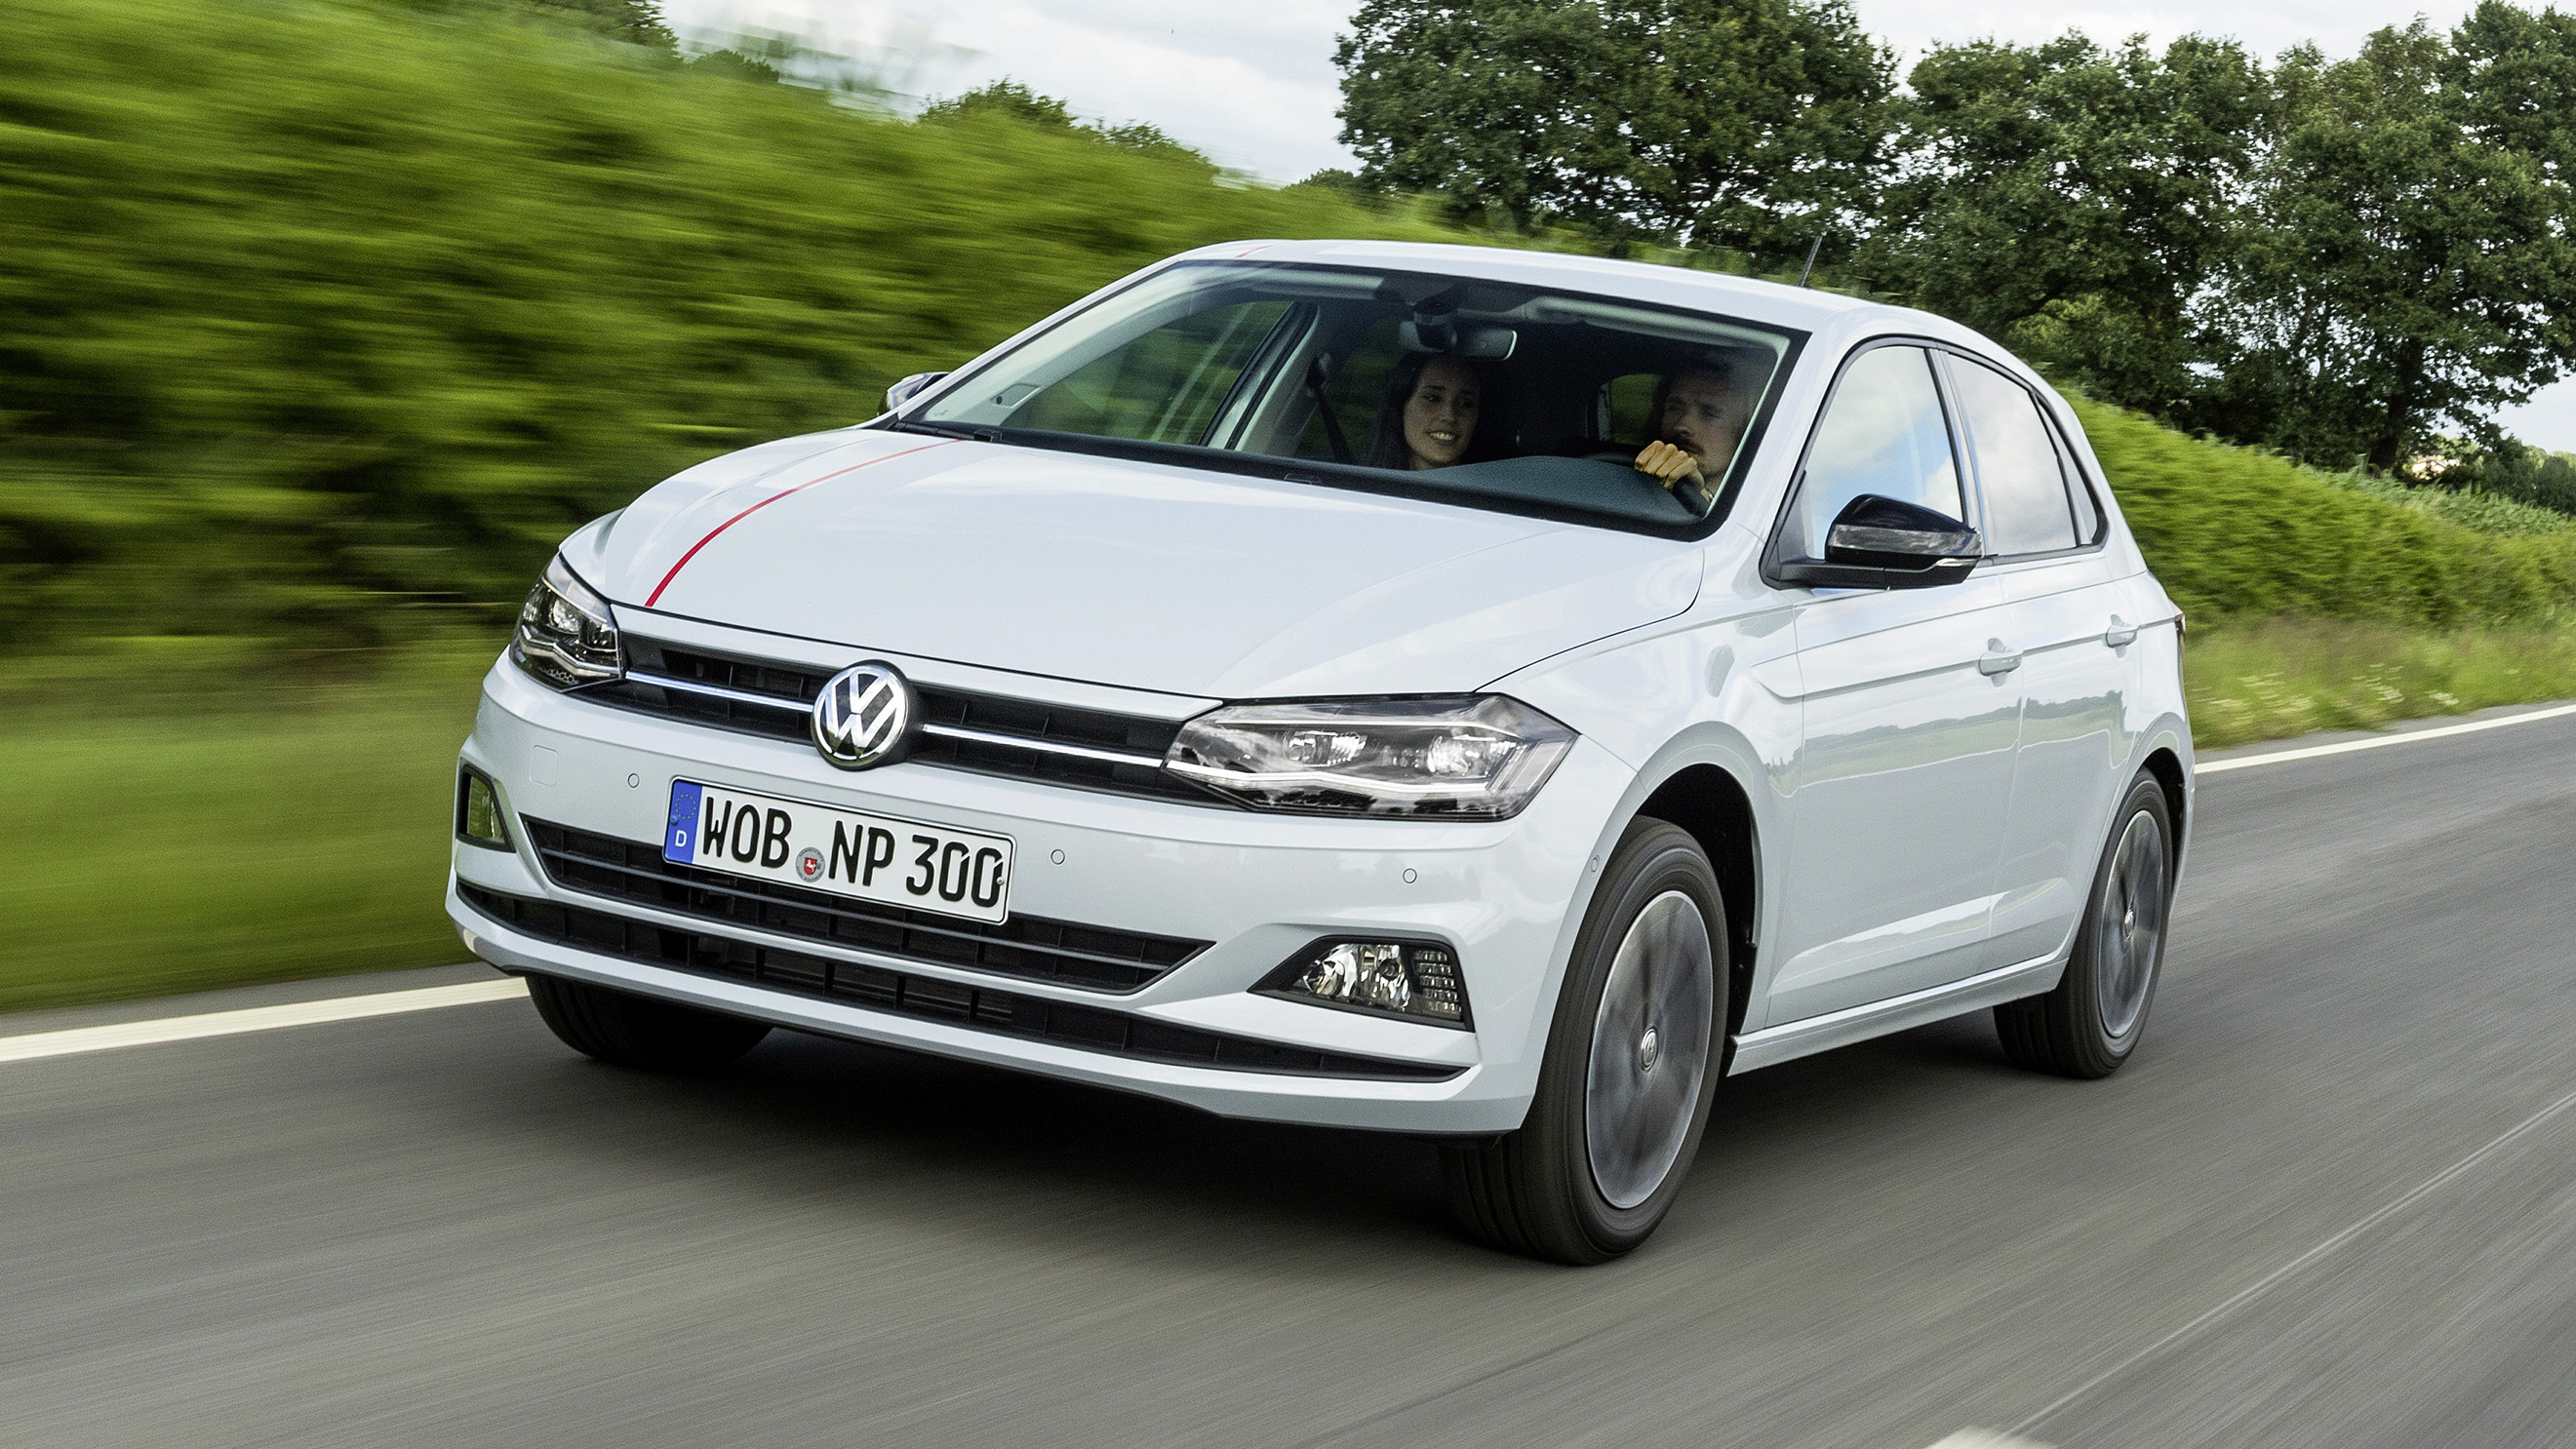 review and com pics launch beetle volkswagen white features specifications headlamp india price new